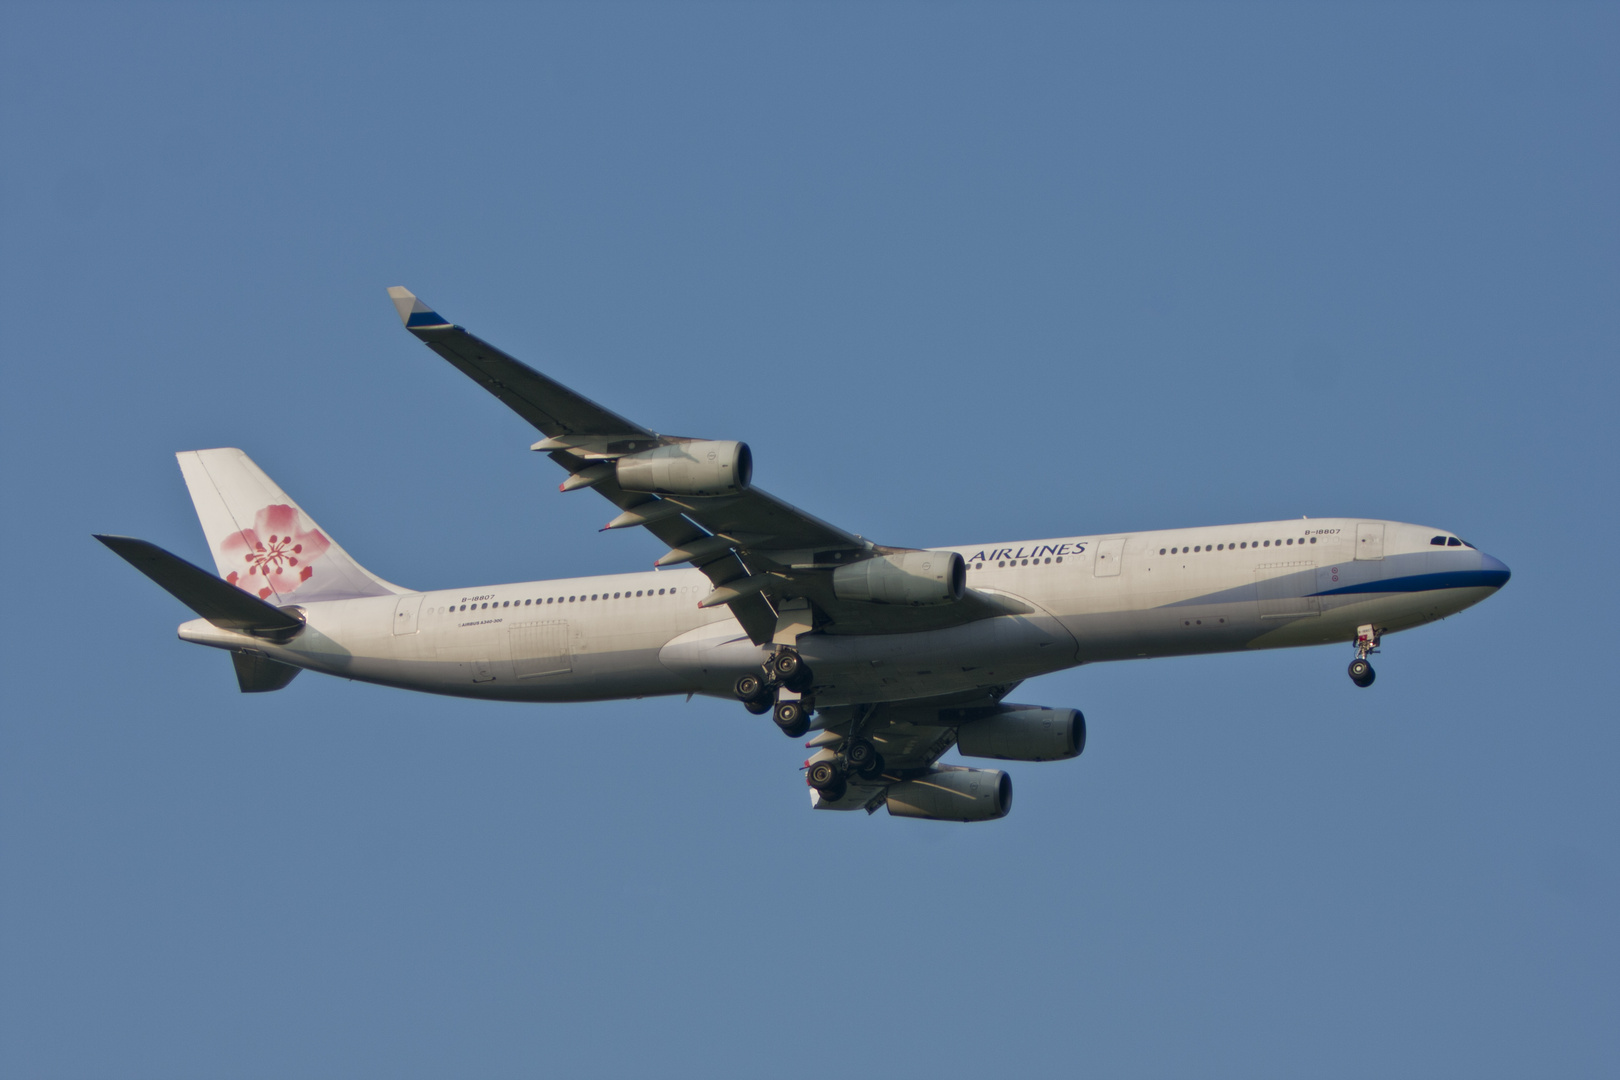 China Airlines Airbus 340-313